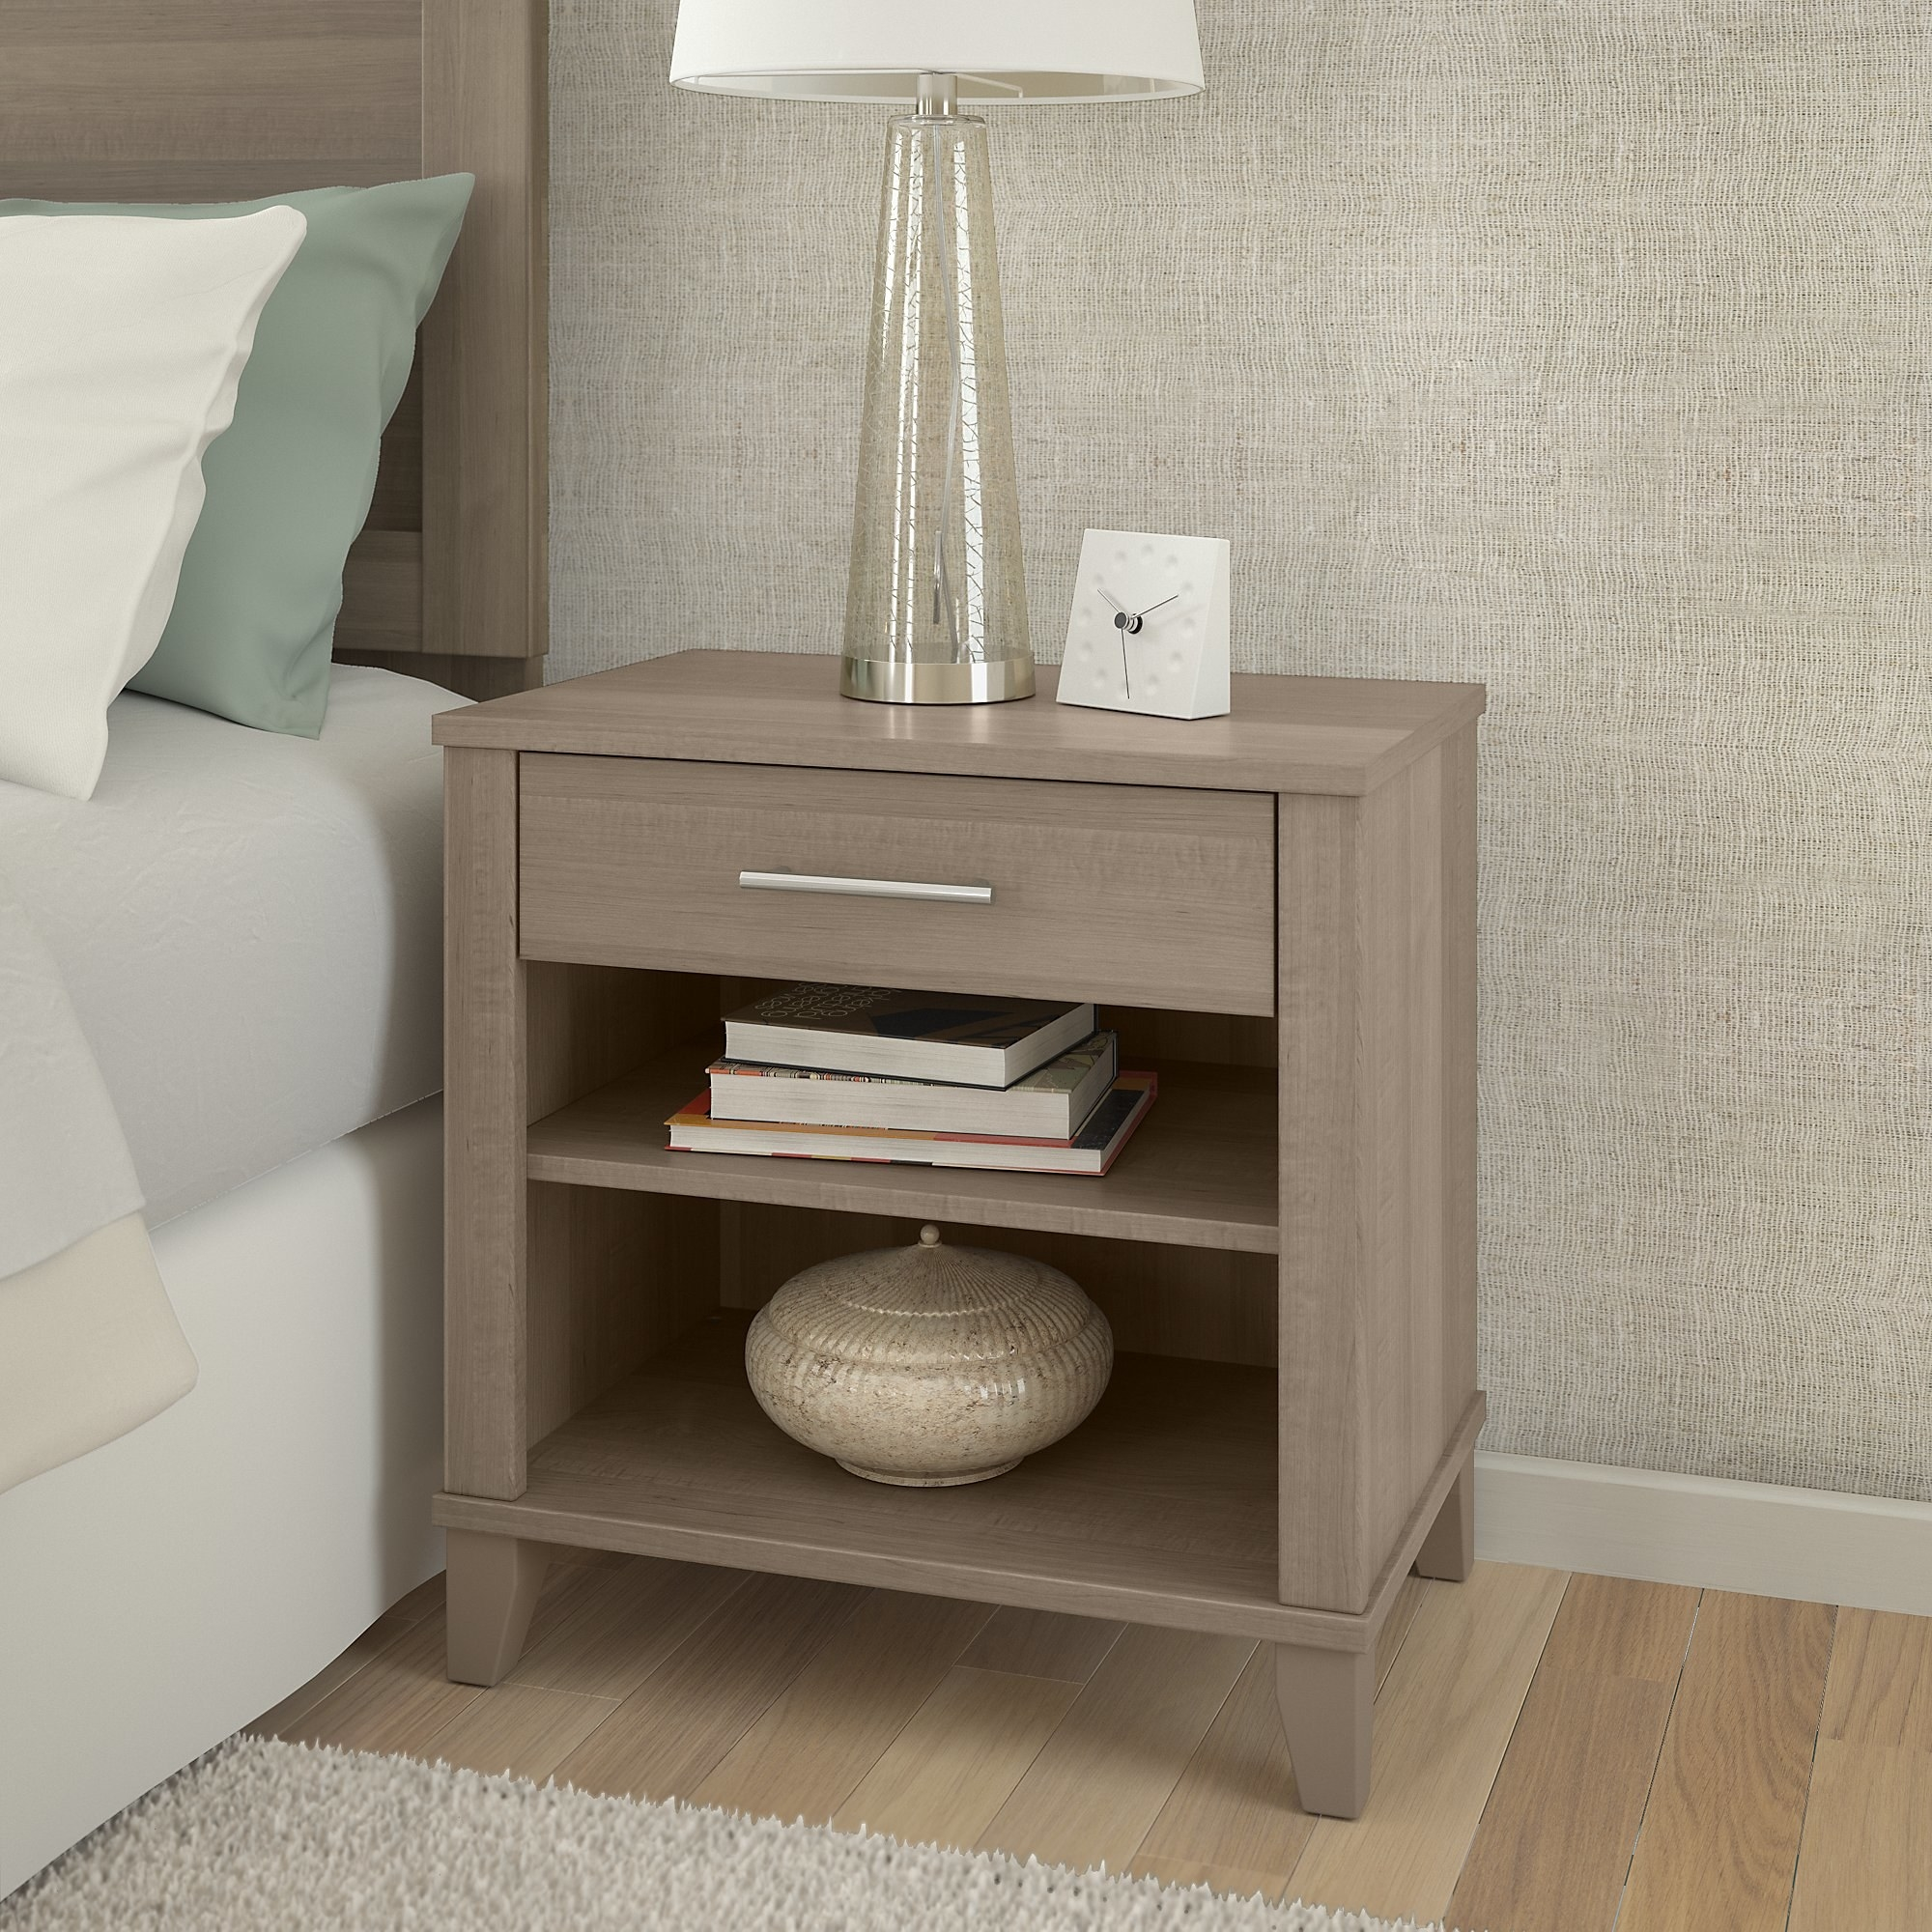 The nightstand with two open shelves and one closed shelf